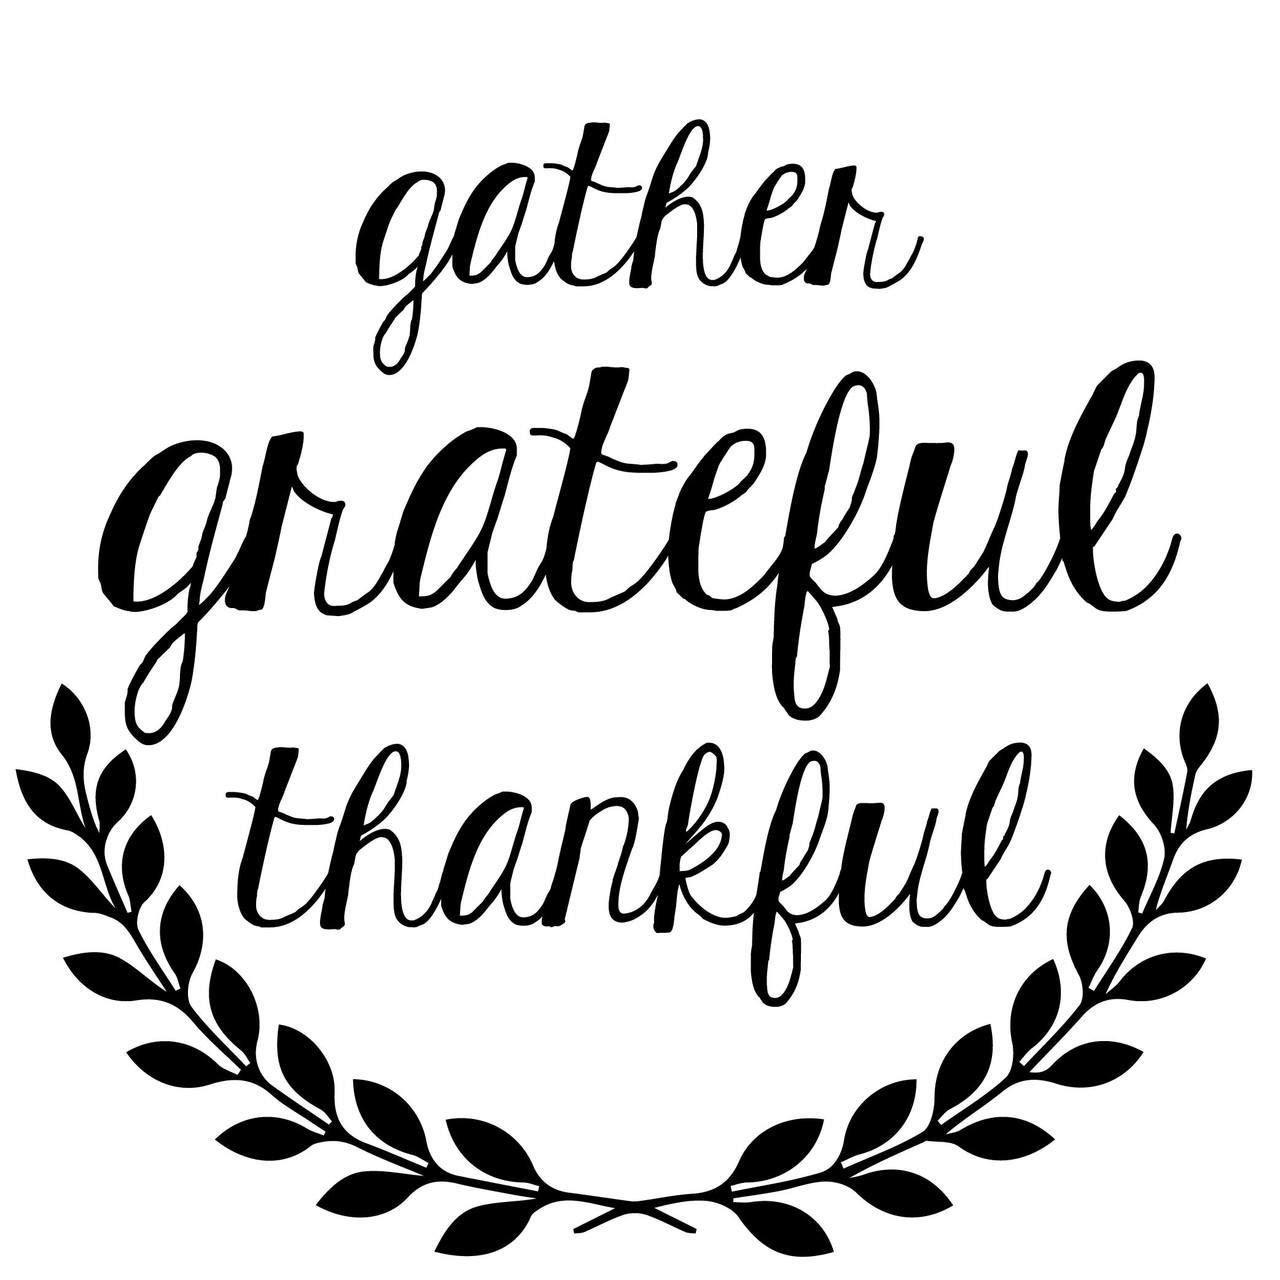 Free Gather Grateful Thankful Svg Cut File